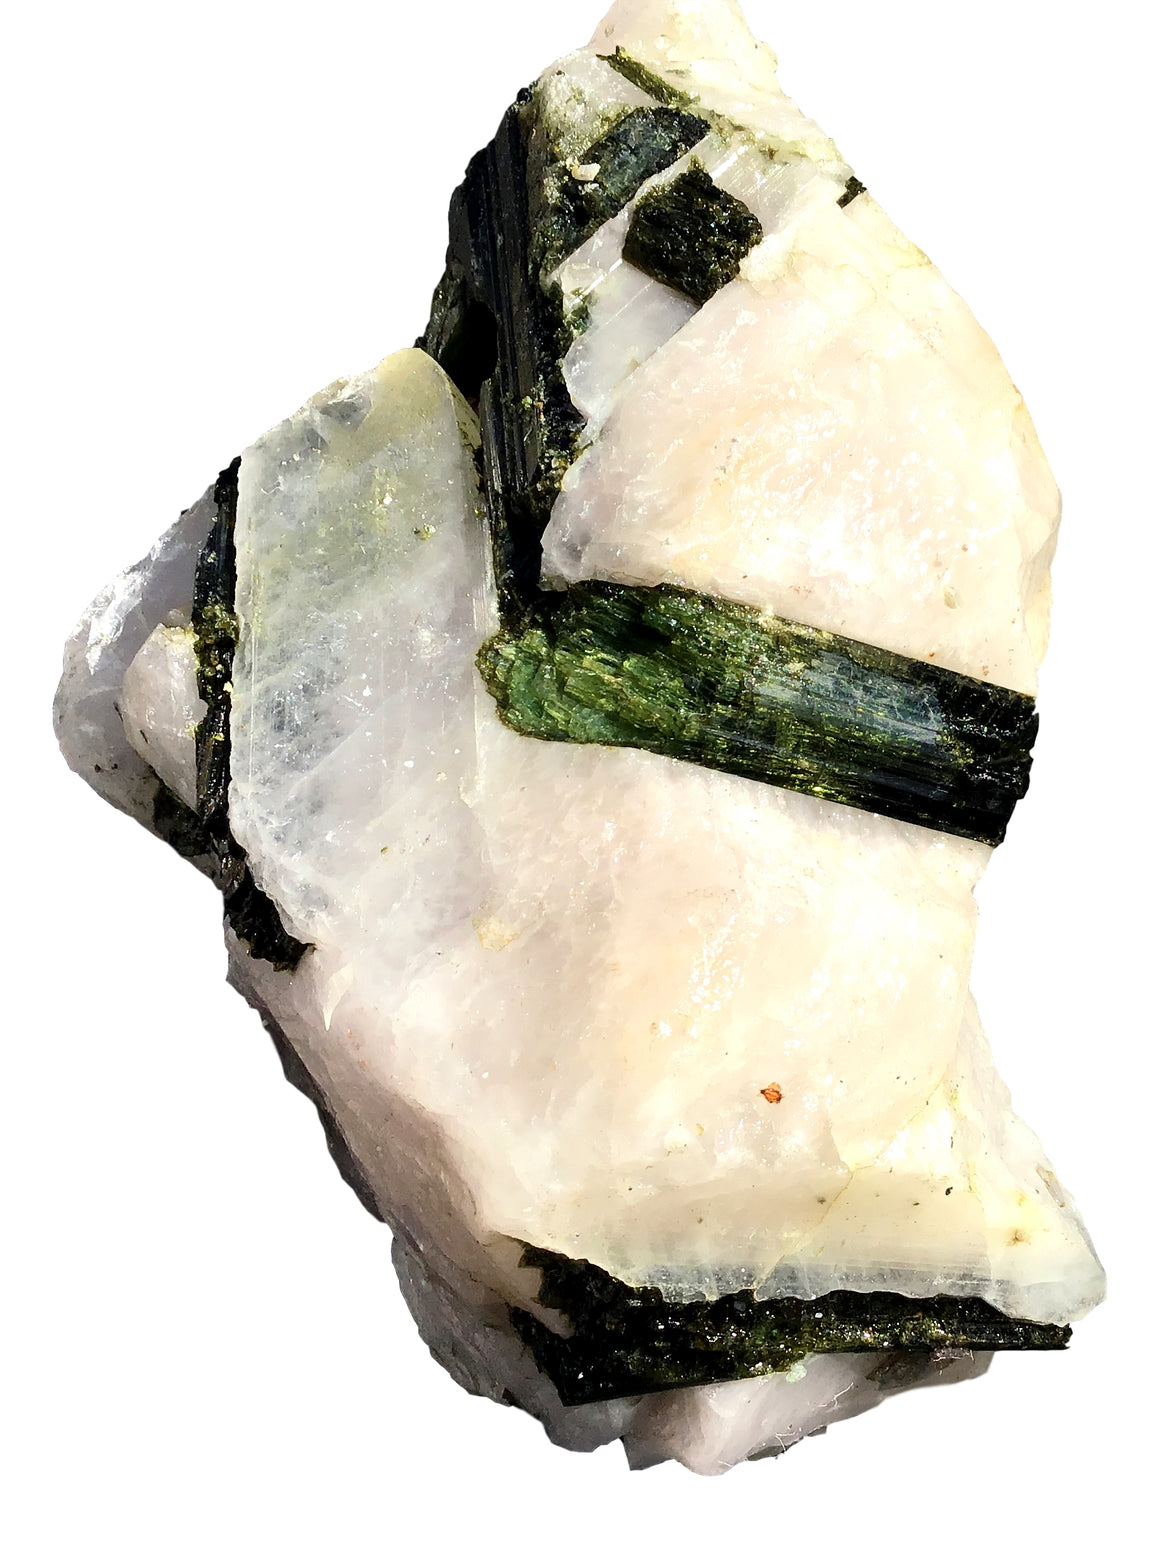 "Watermelon Tourmaline Crystal Mineral Display Specimen #17 - 6.5"" x 4"" x 2.5"" - dinosaursrocksuperstore"